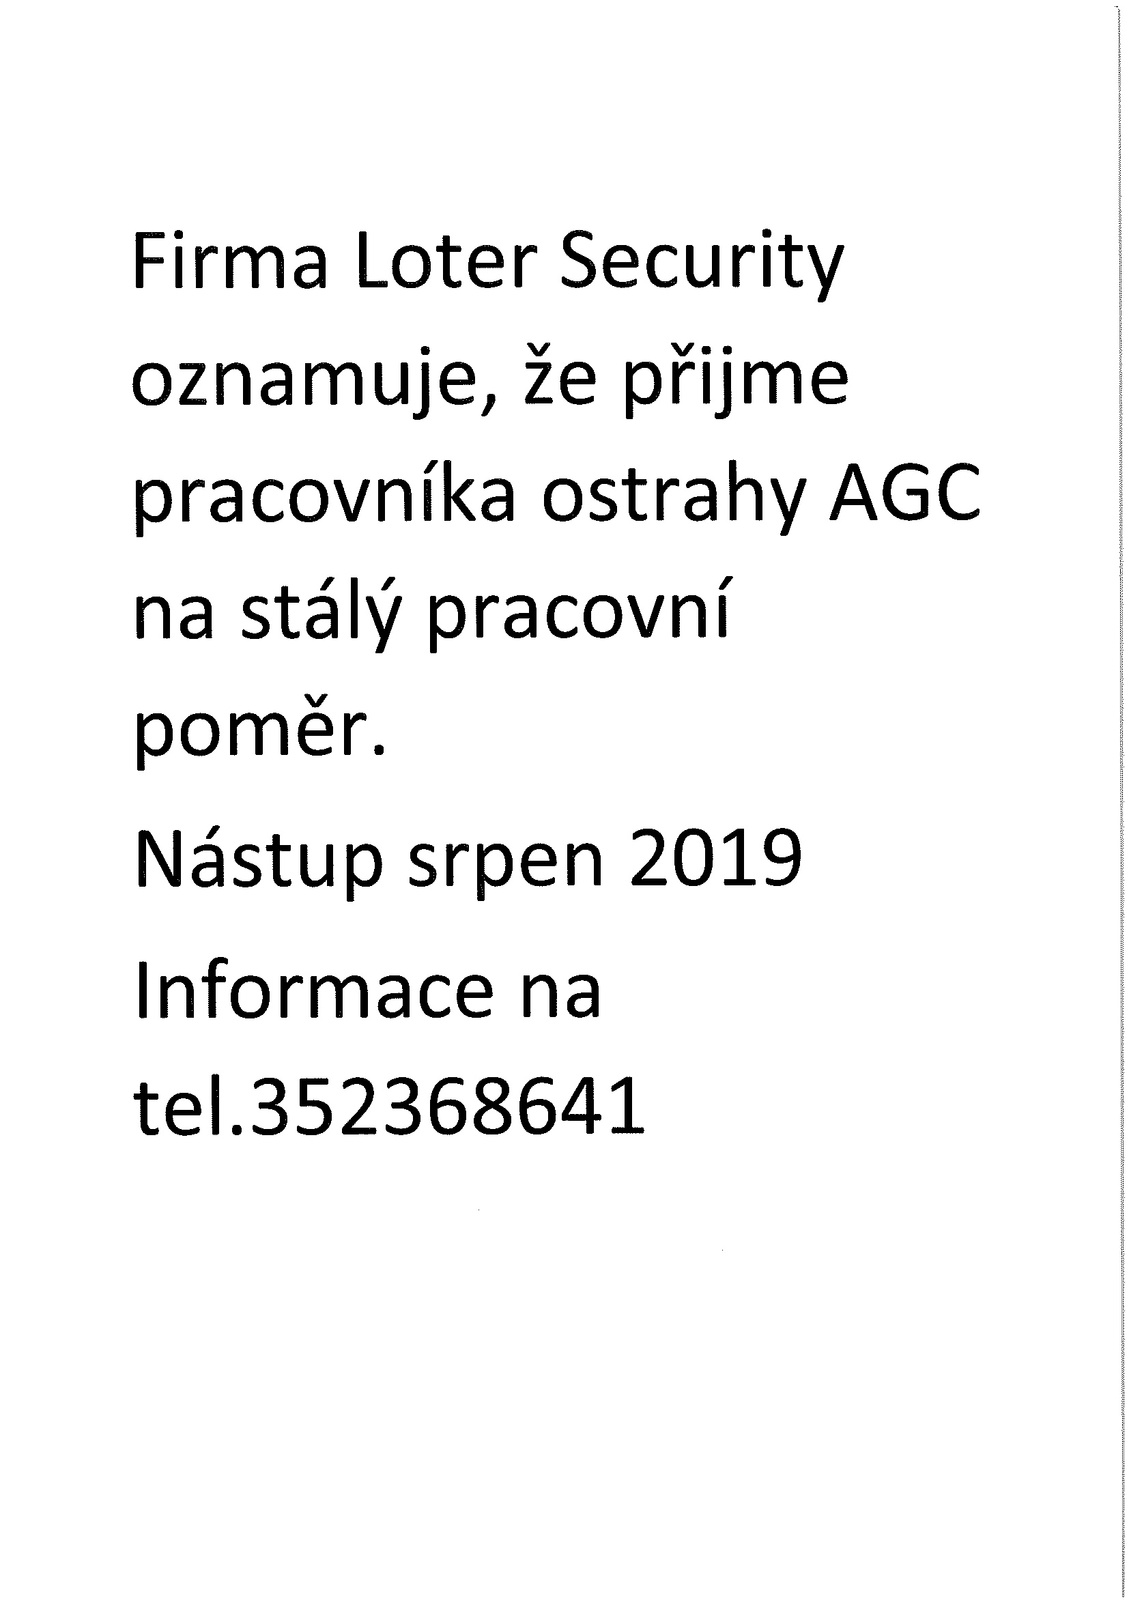 firma Loter Security.jpg